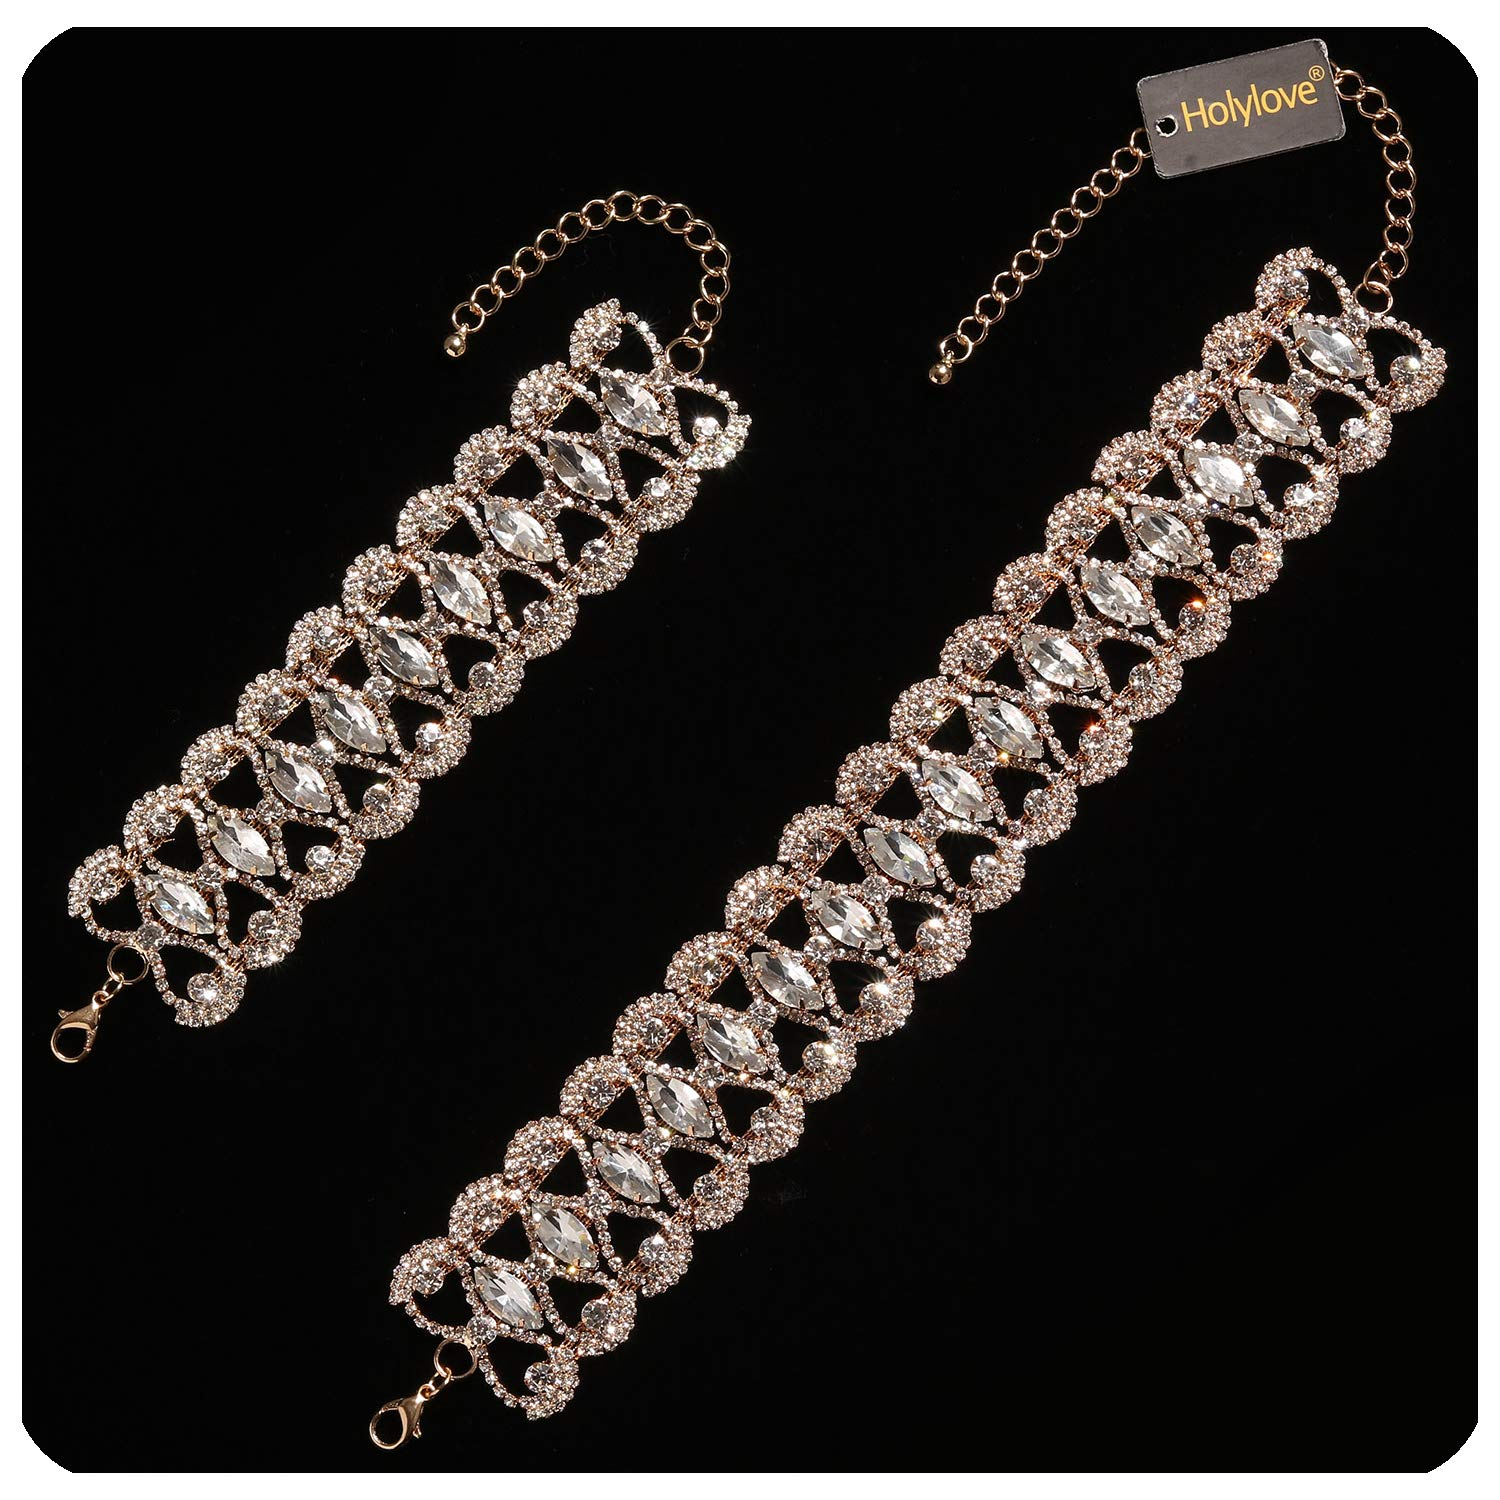 Holylove Fashion Choker Necklace Chain for Daily Party Wedding Club Show Gold Gift Box-HLN00025 Gold US